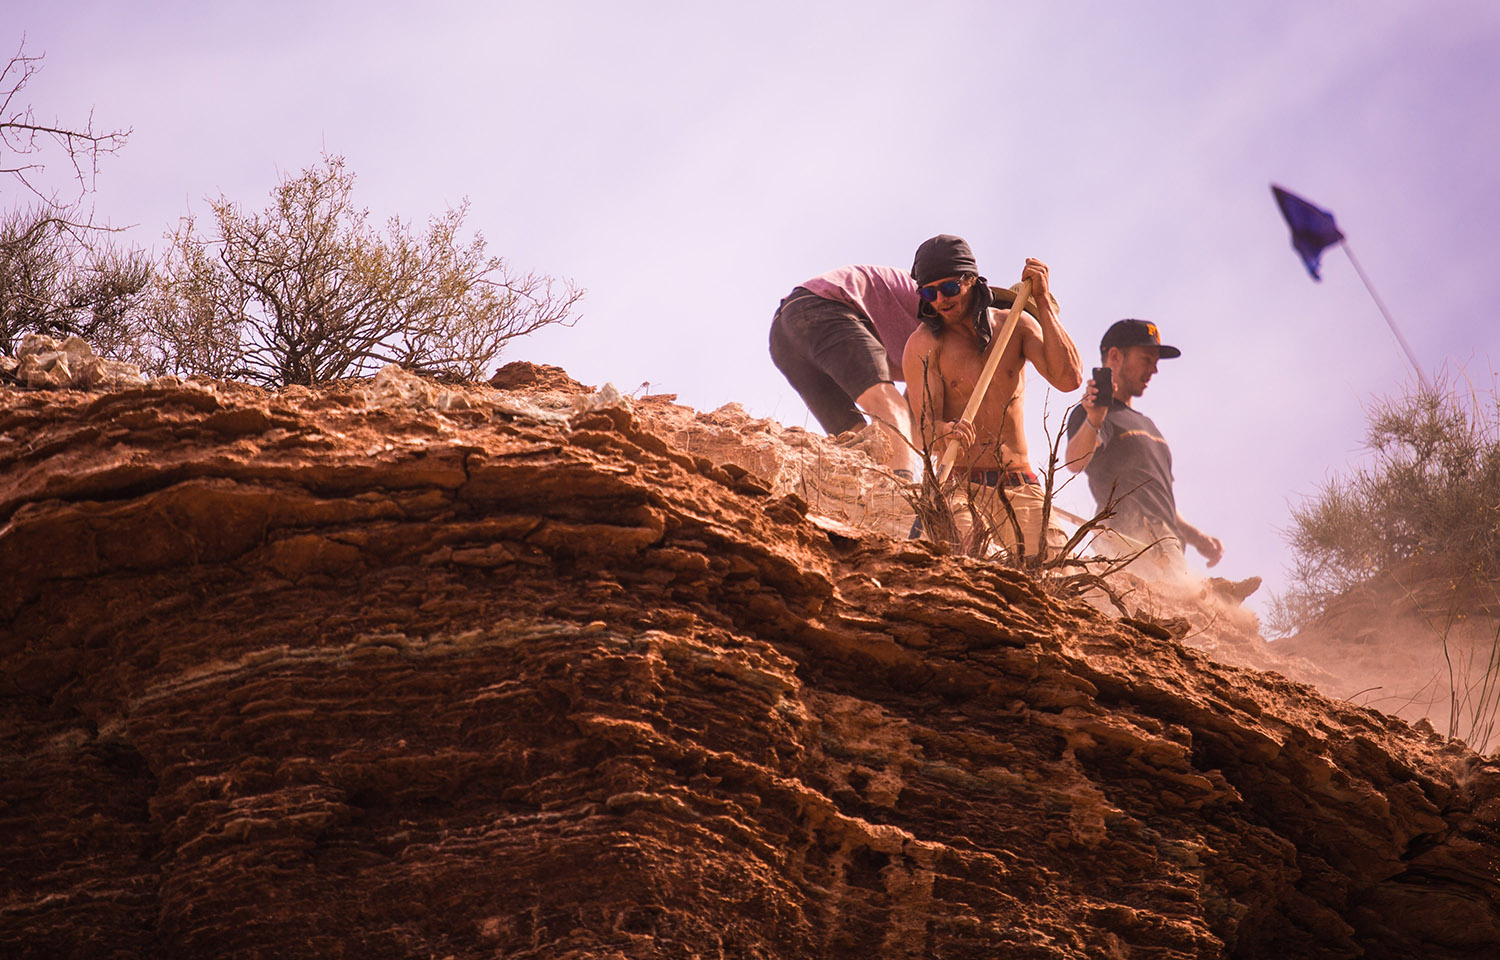 The sweltering heat of the Utah desert makes both digging and riding hard work.